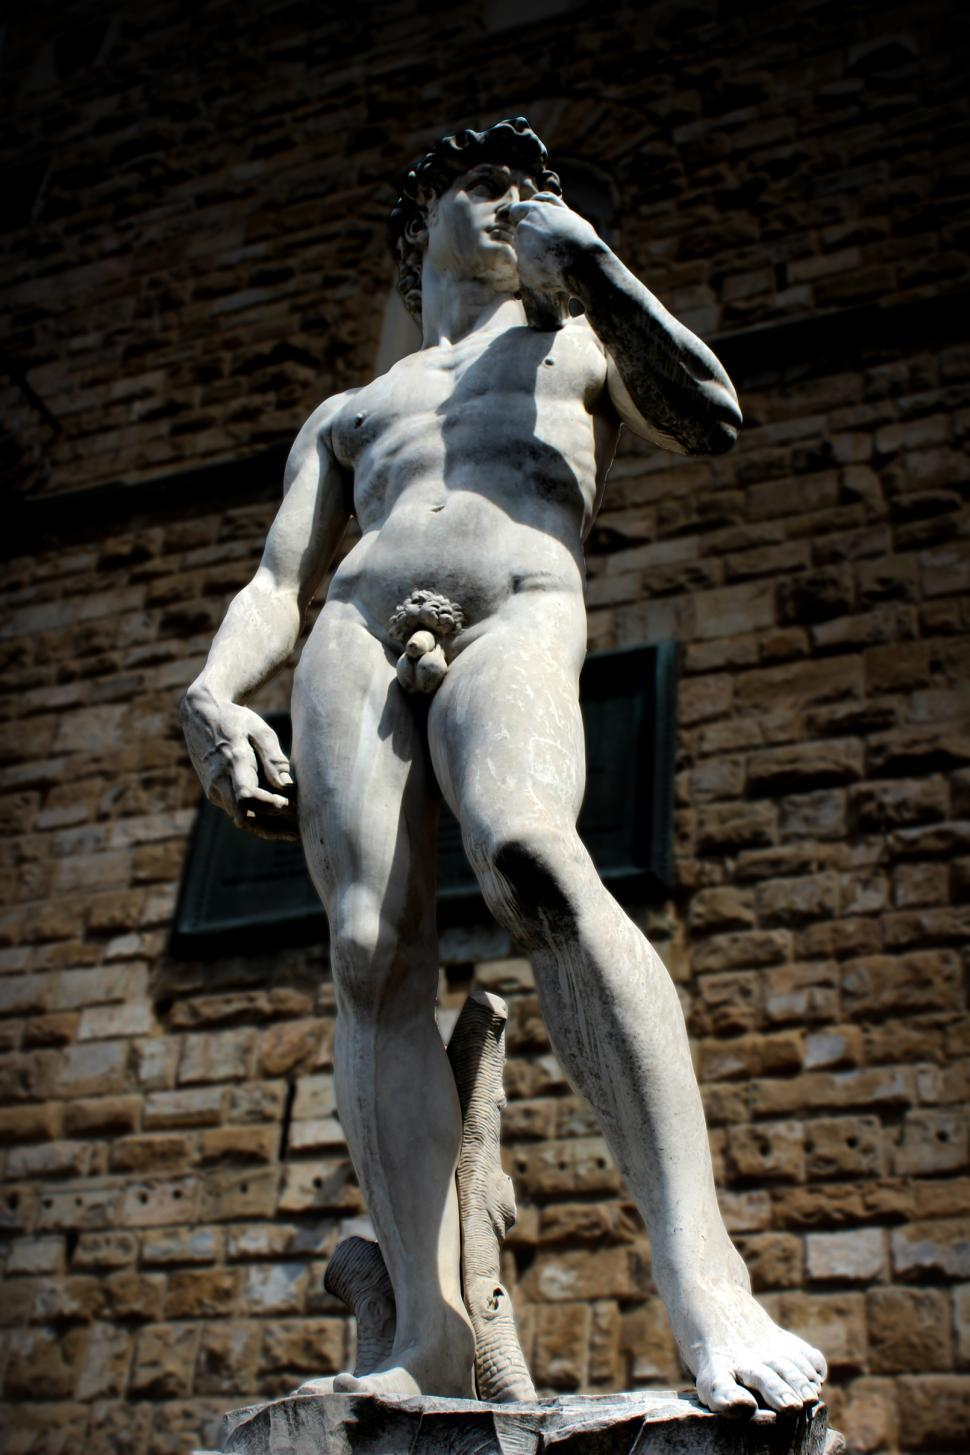 Download Free Stock HD Photo of Statue of David - Outside of Palazzo Vecchio - Florence - Italy  Online